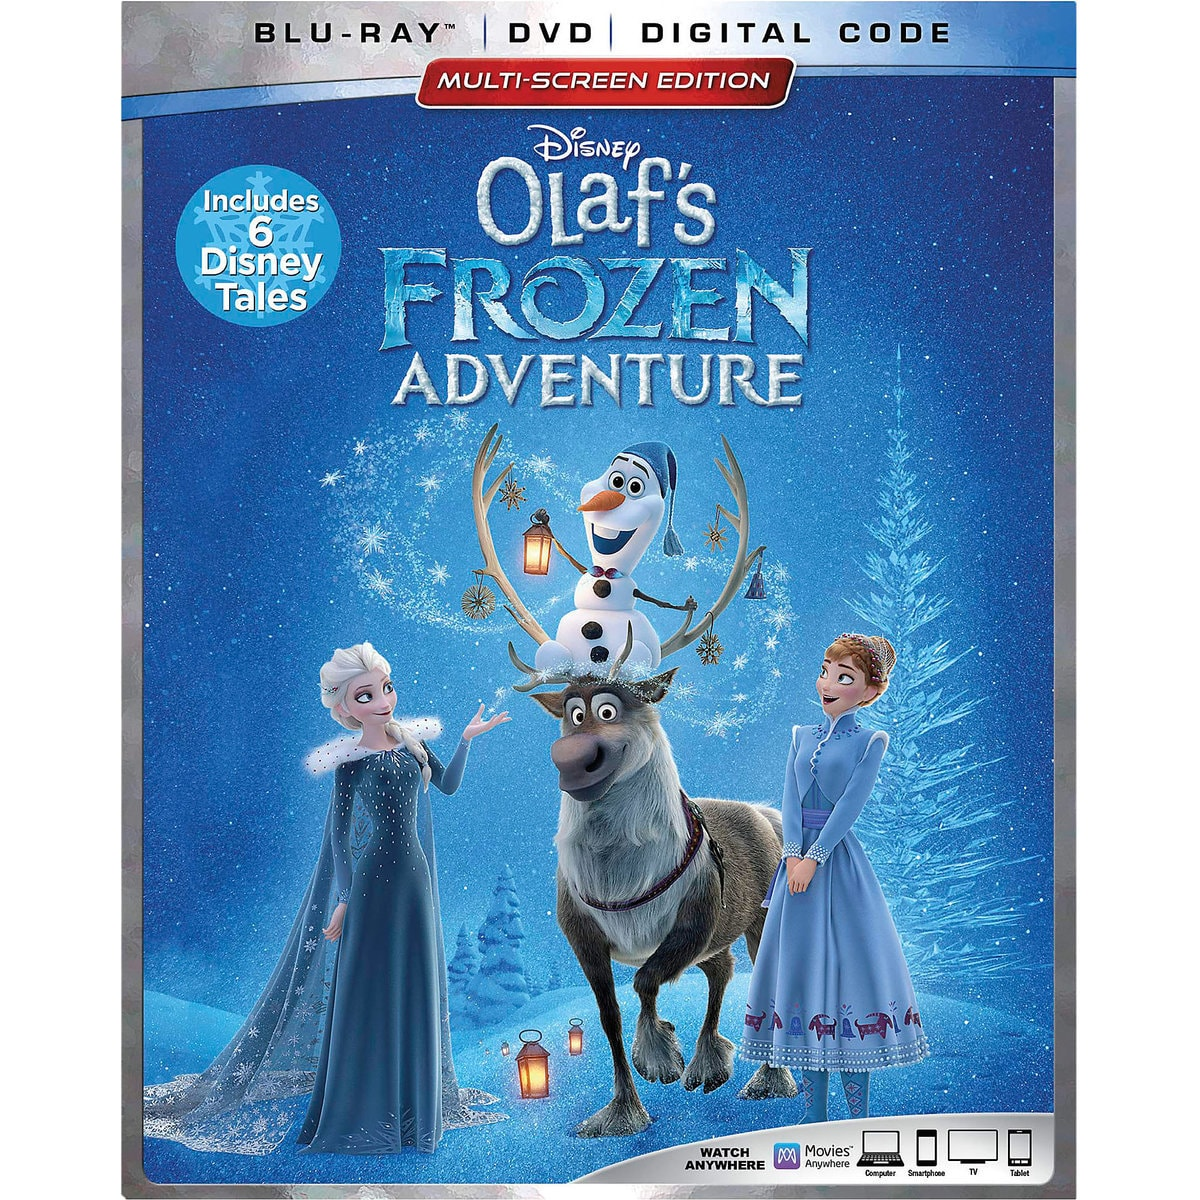 923a43a6d Product Image of Olaf's Frozen Adventure Blu-ray Combo Pack Multi-Screen  Edition #